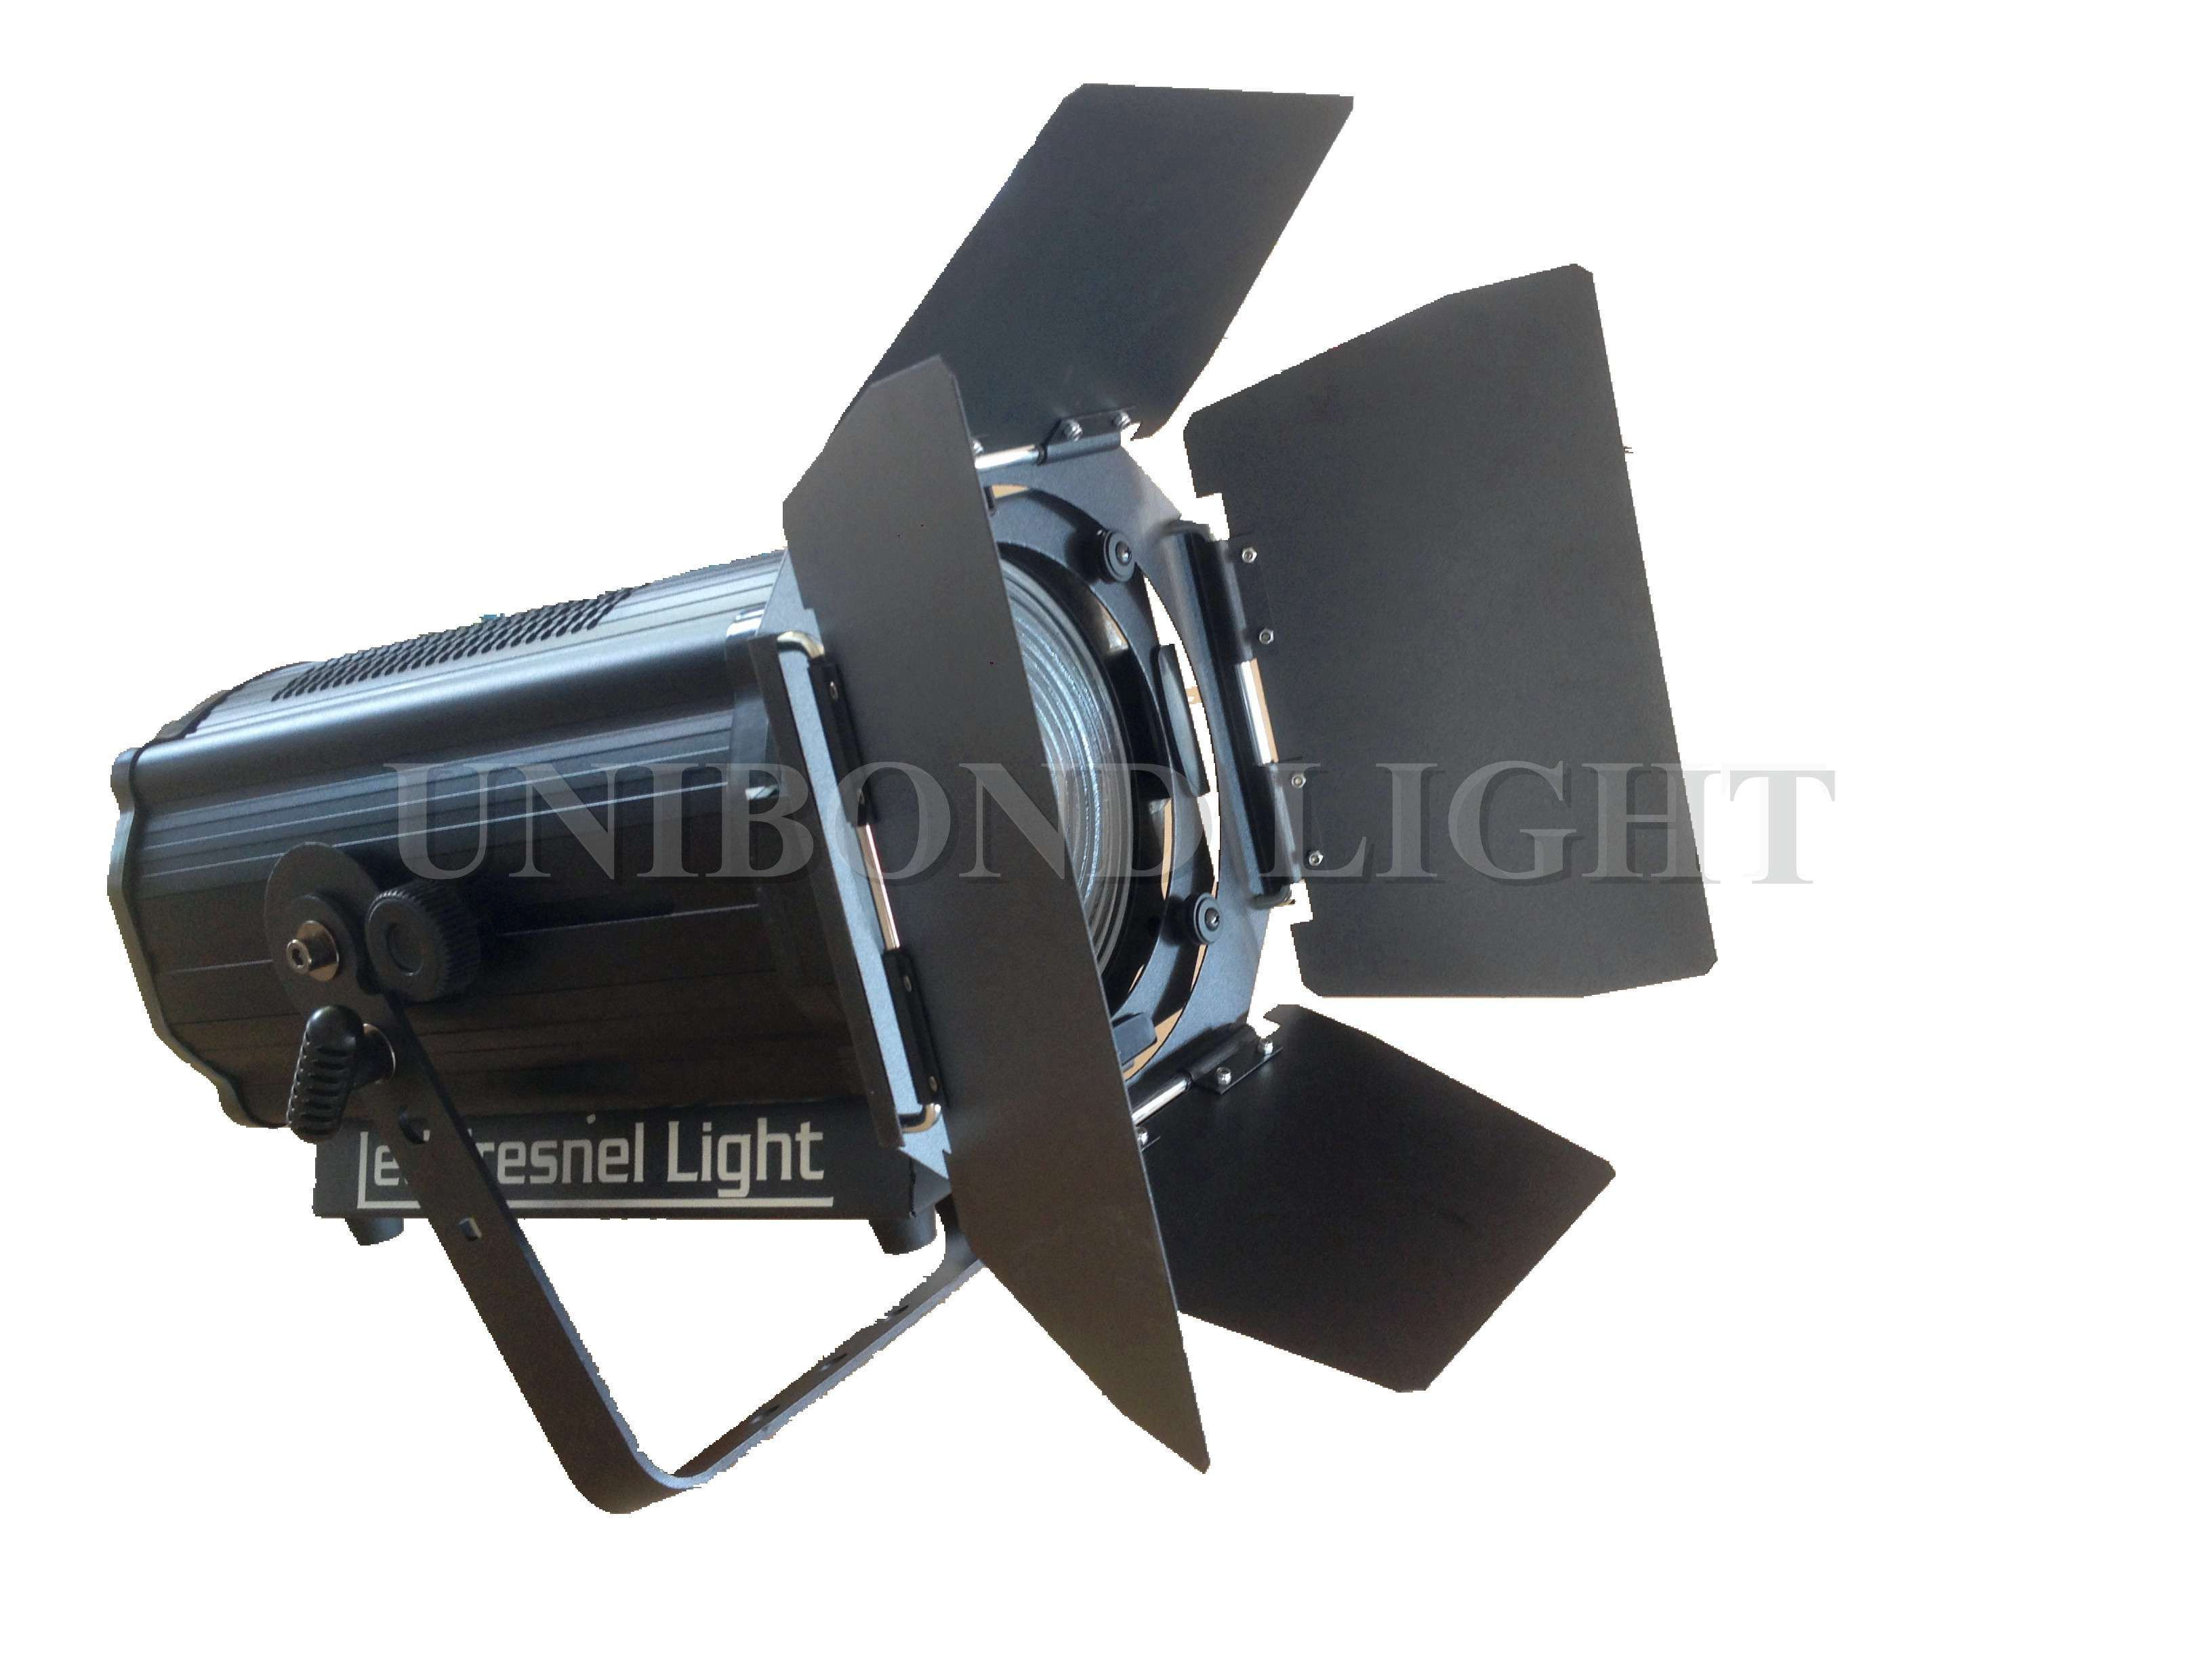 200W LED Profile Spot Light for Car Exhibition